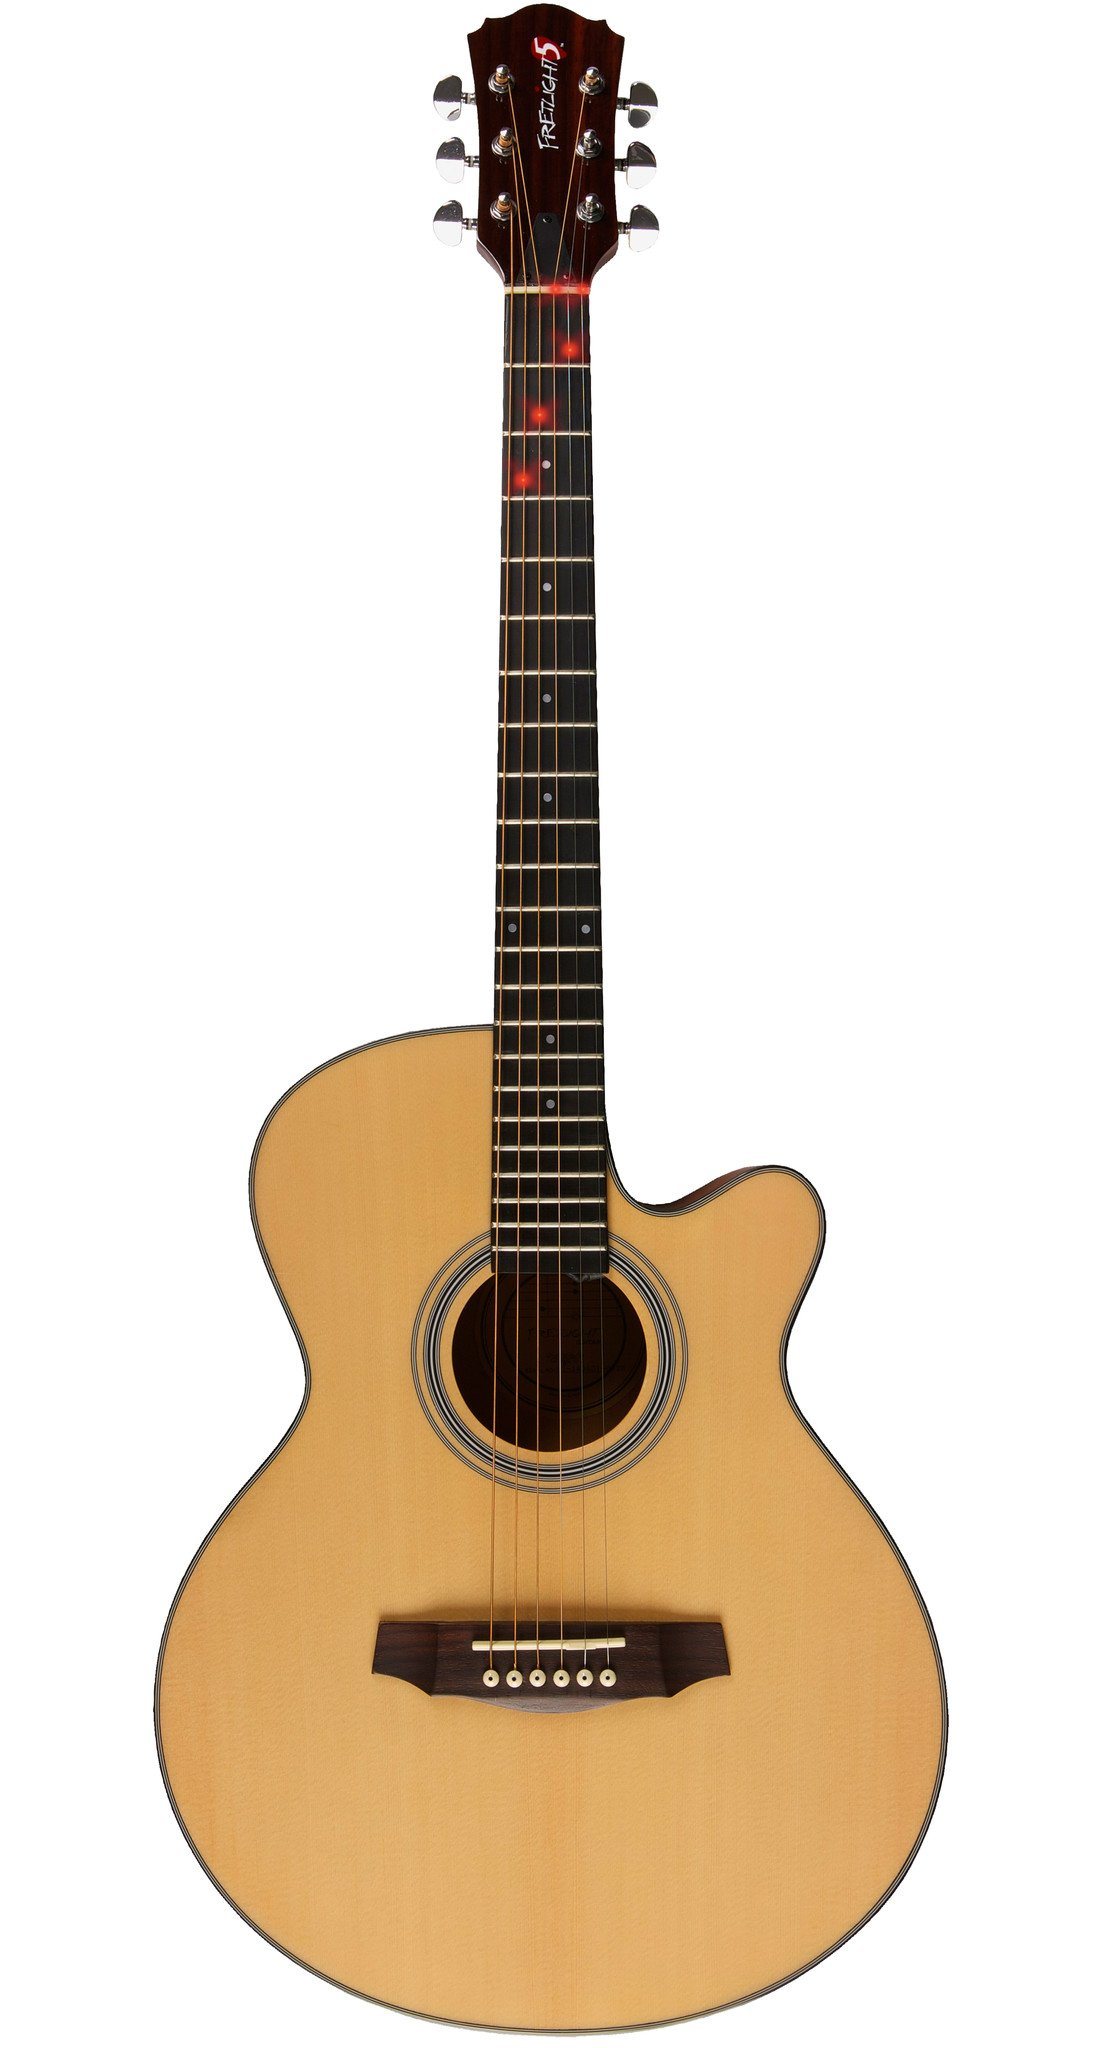 Sold Out - Fretlight 5 Wired Acoustic Guitar + FREE Standard ...